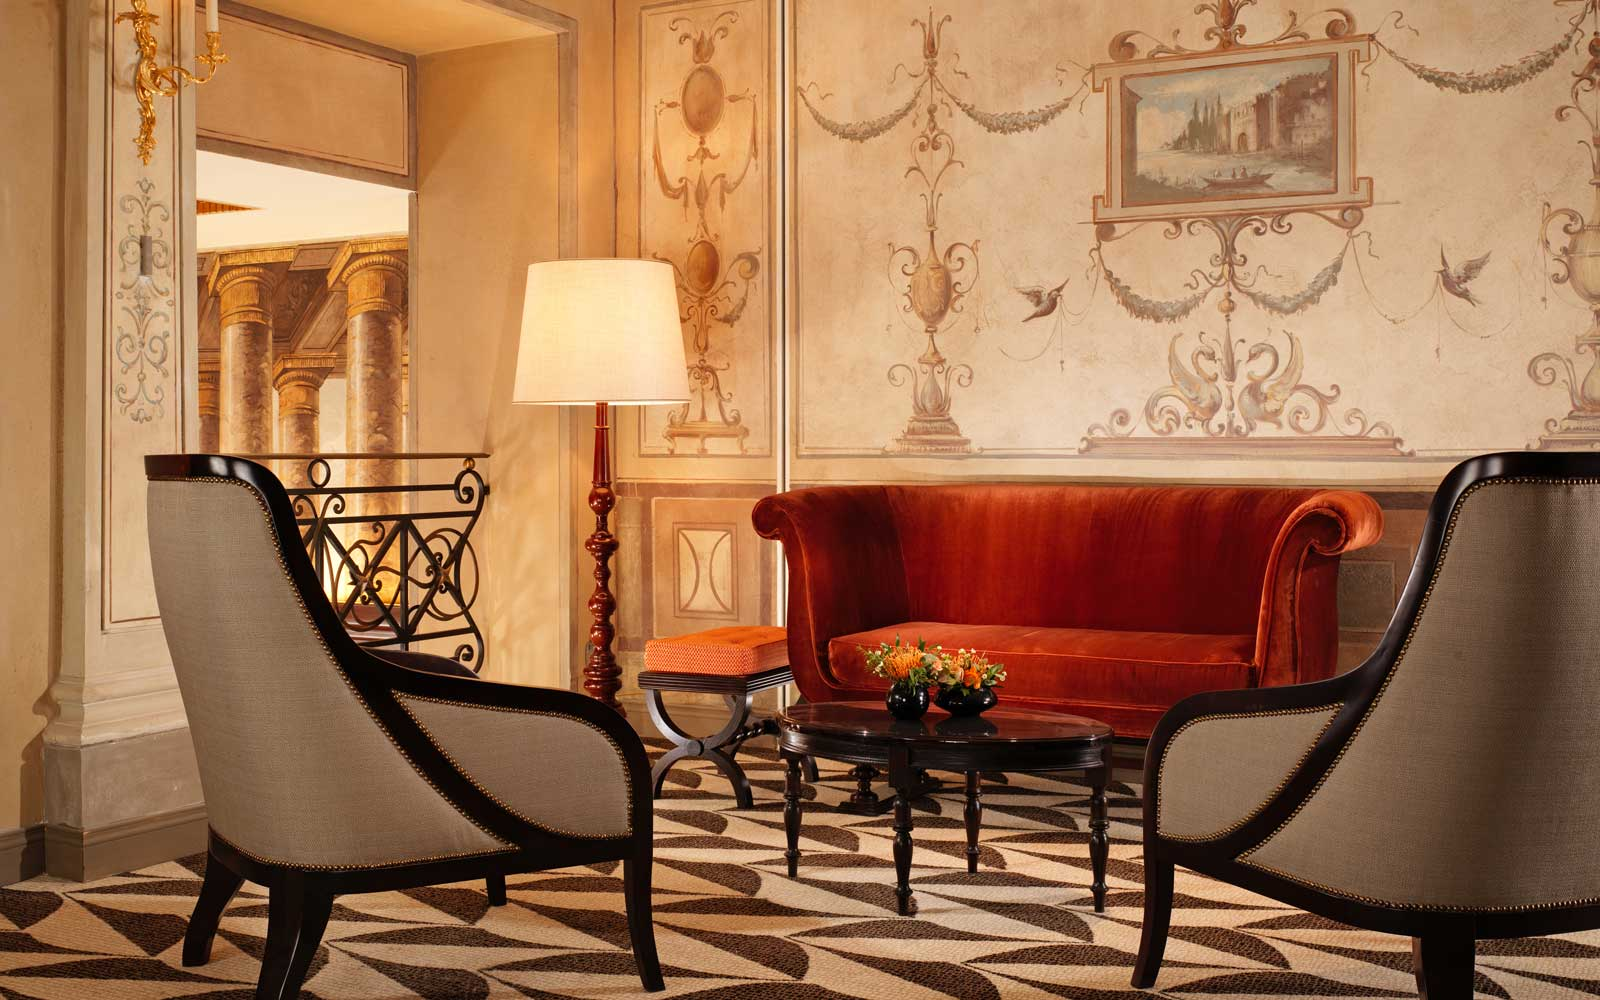 Foyer at the Hotel Eded, in Rome, Italy